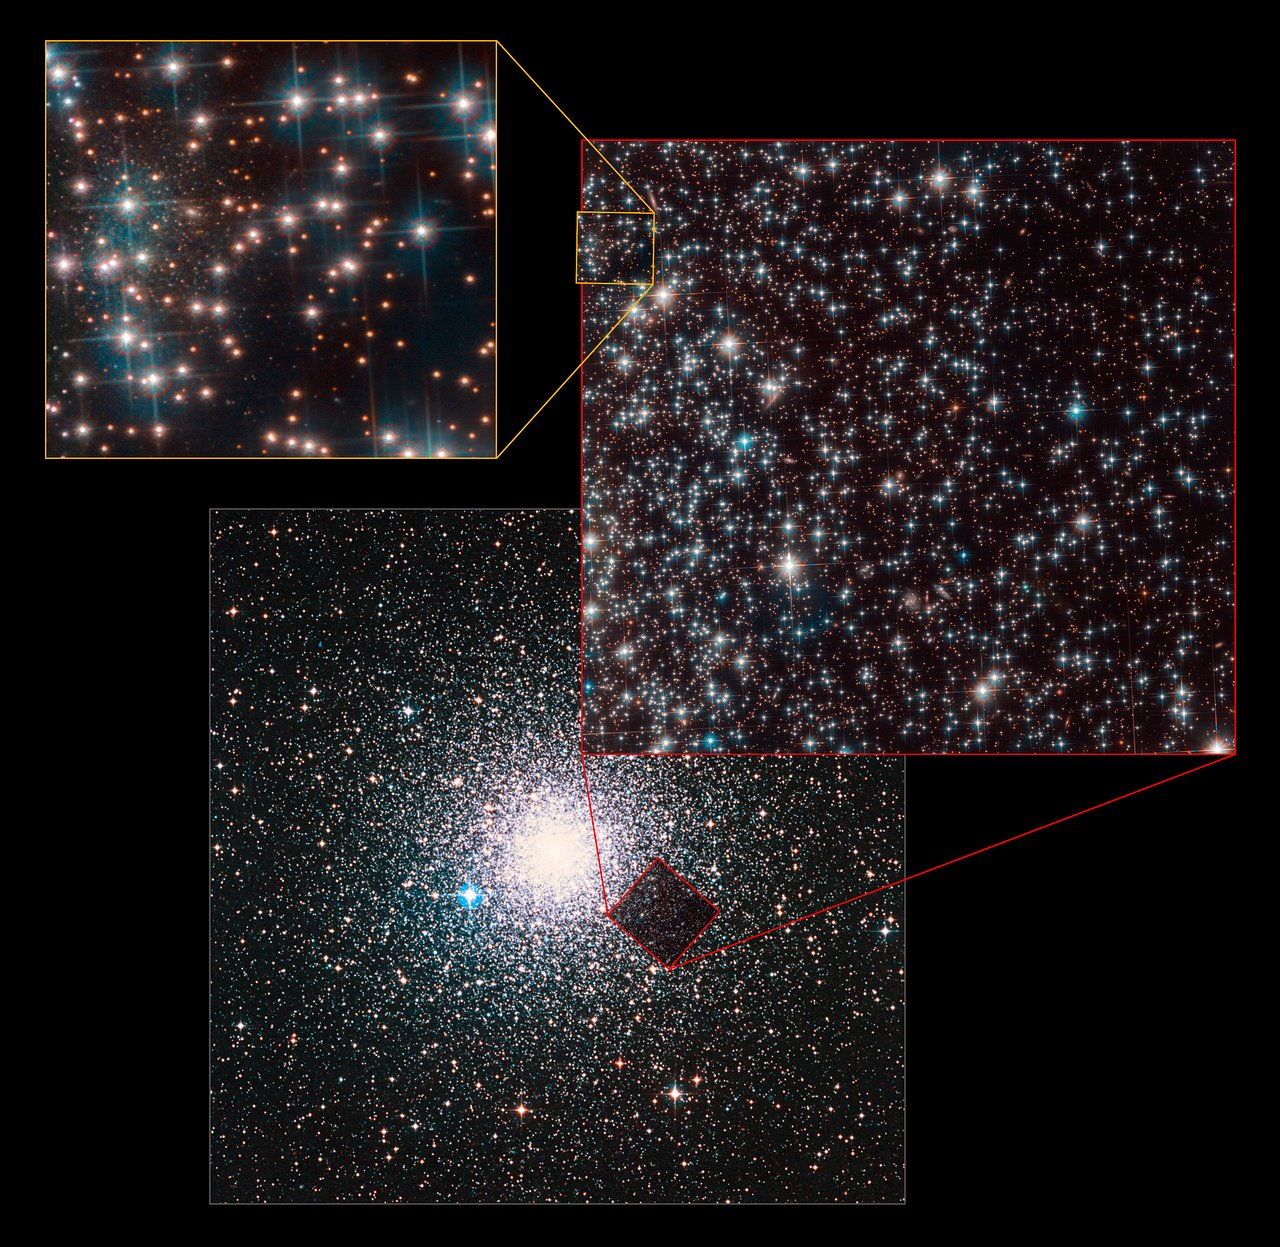 Hubble fortuitously discovers a new galaxy in the cosmic neighbourhood